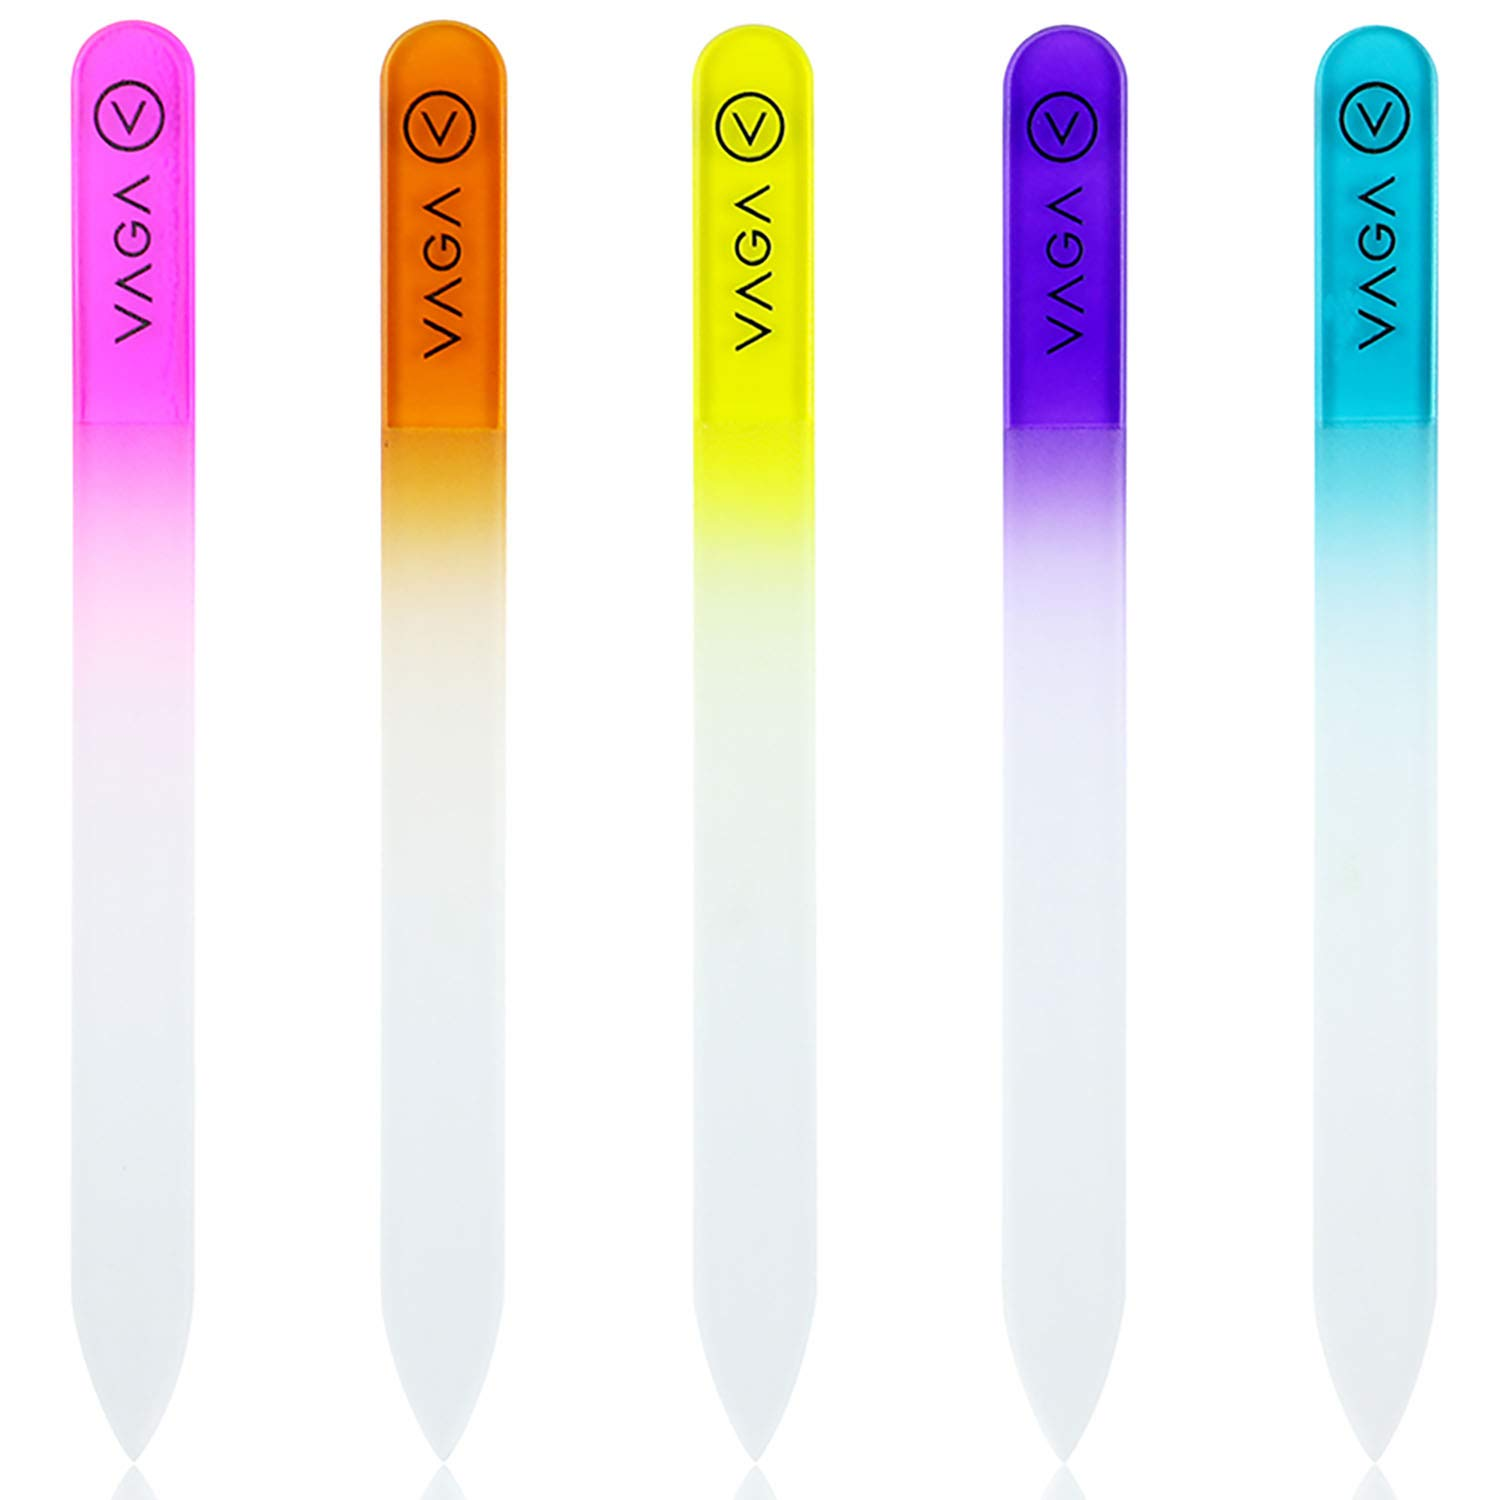 Amazon.com: VAGA Crystal Glass Nail File set of 5 Premium Rainbow ...